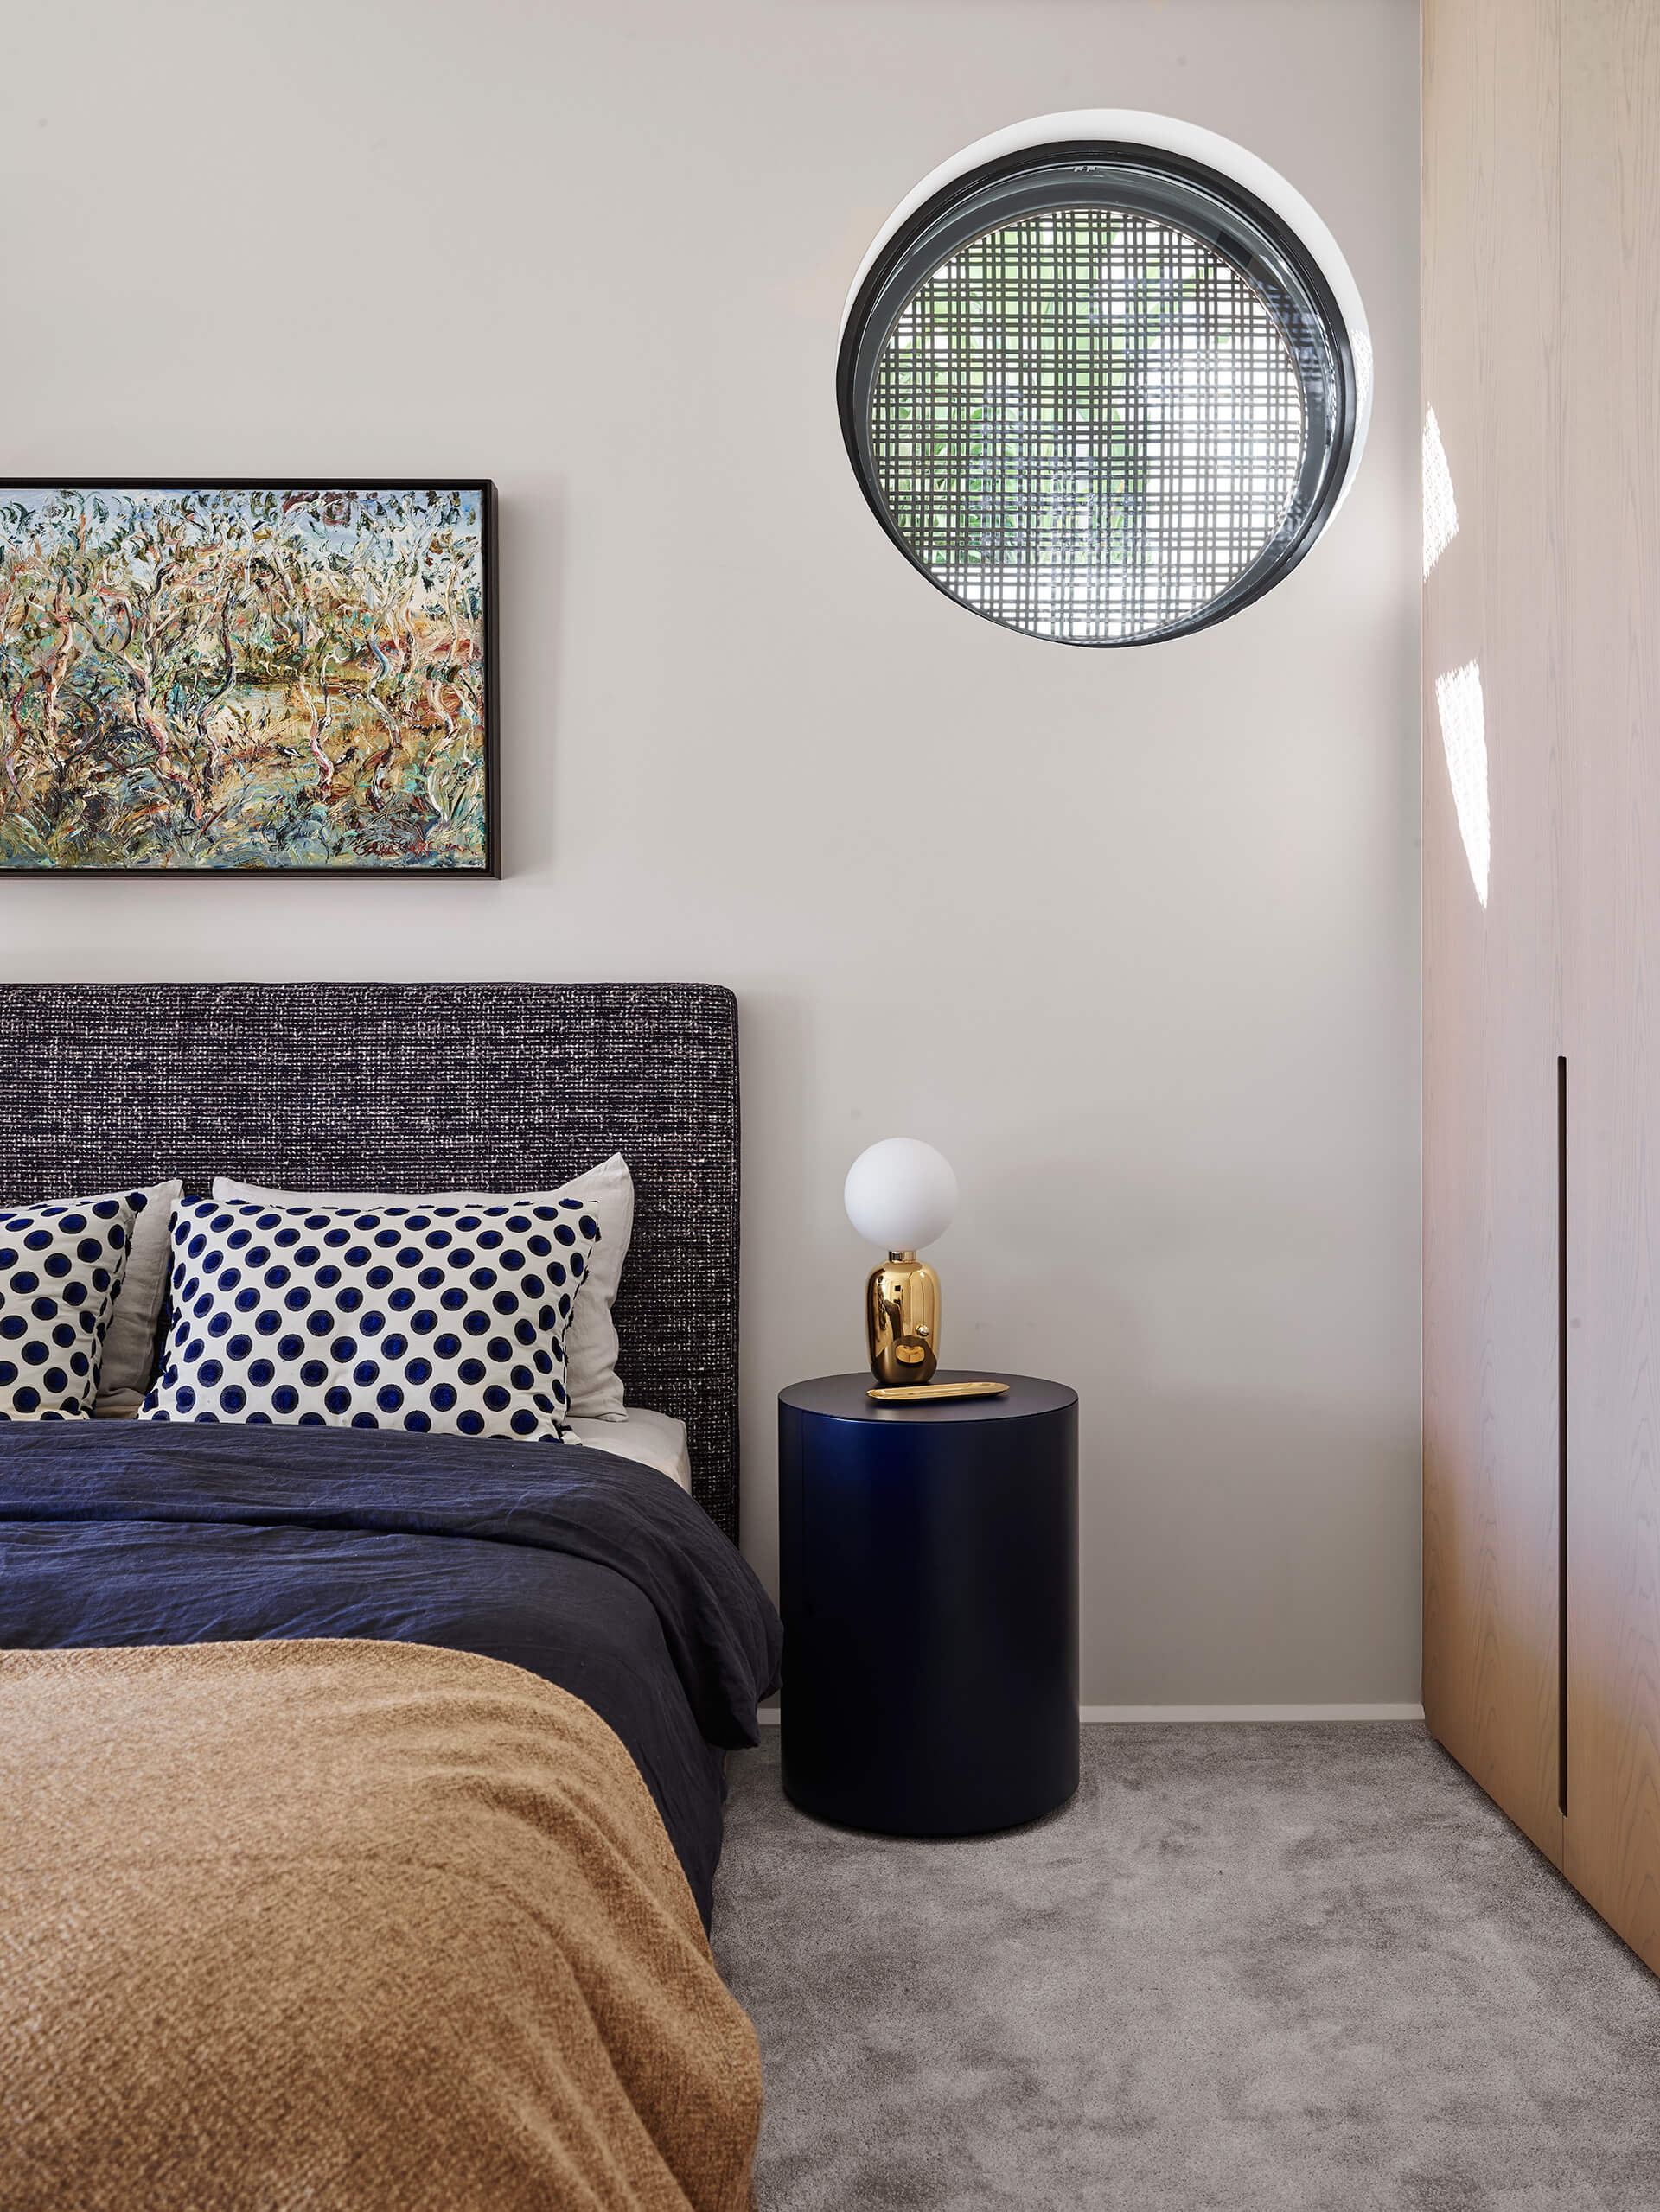 The third bedroom in the house, for a family of six | Hill House Interiors | Decus Interiors | STIRworld